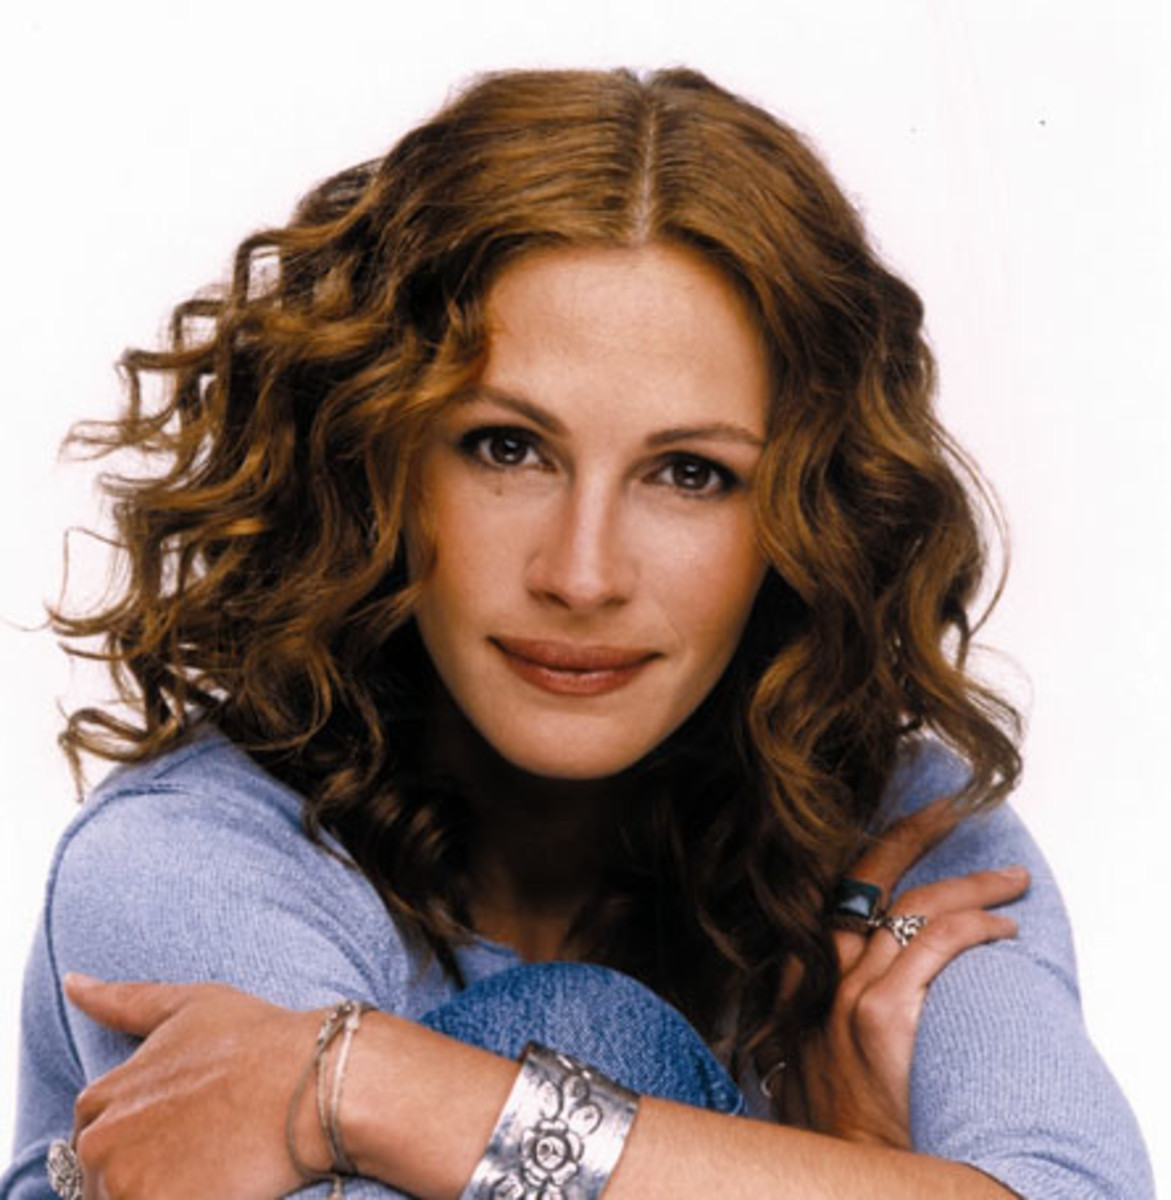 Julia Roberts is an American actress who has acted in more than 30 films till date. She has won several Awards and recognitions.